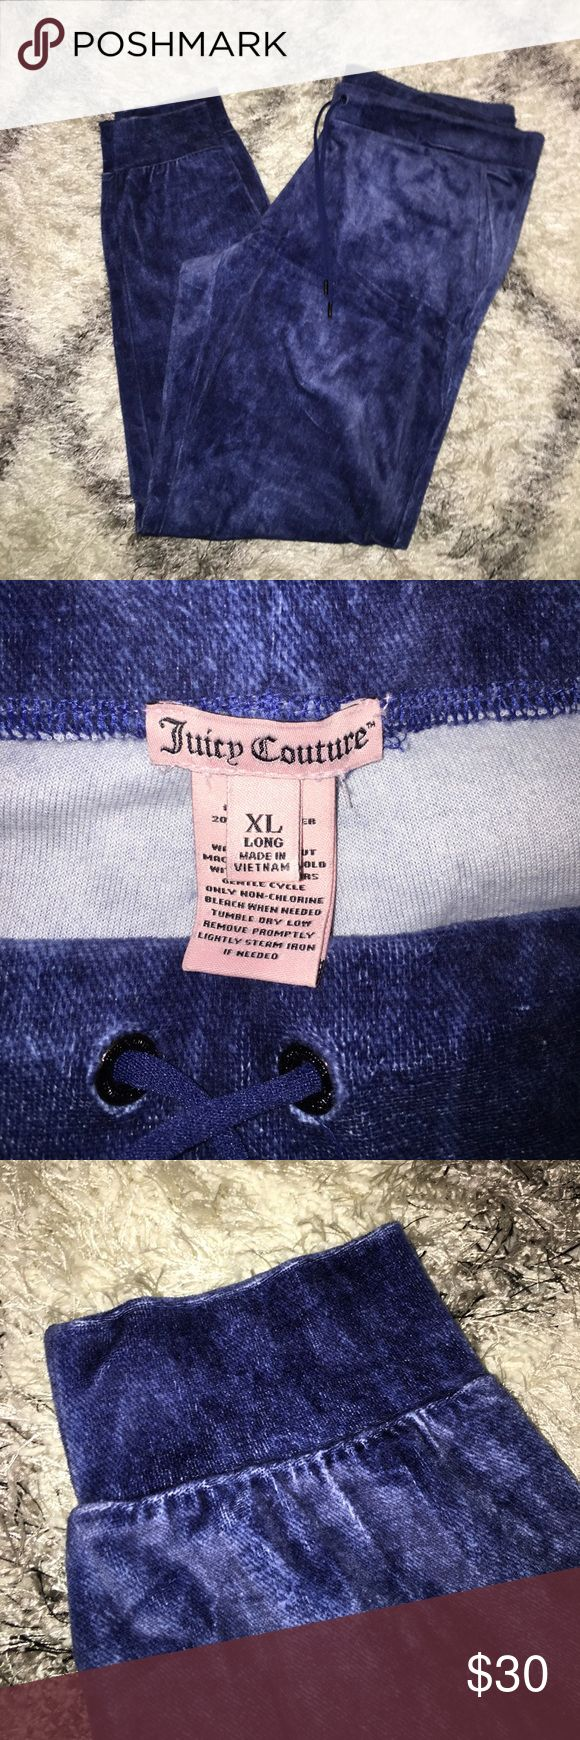 Juicy Couture Velour jumpsuit In like new condition. authentic Juicy Couture jean blue jacket with hood and jogger pants. No holes or stains. Juicy Couture Pants Jumpsuits & Rompers